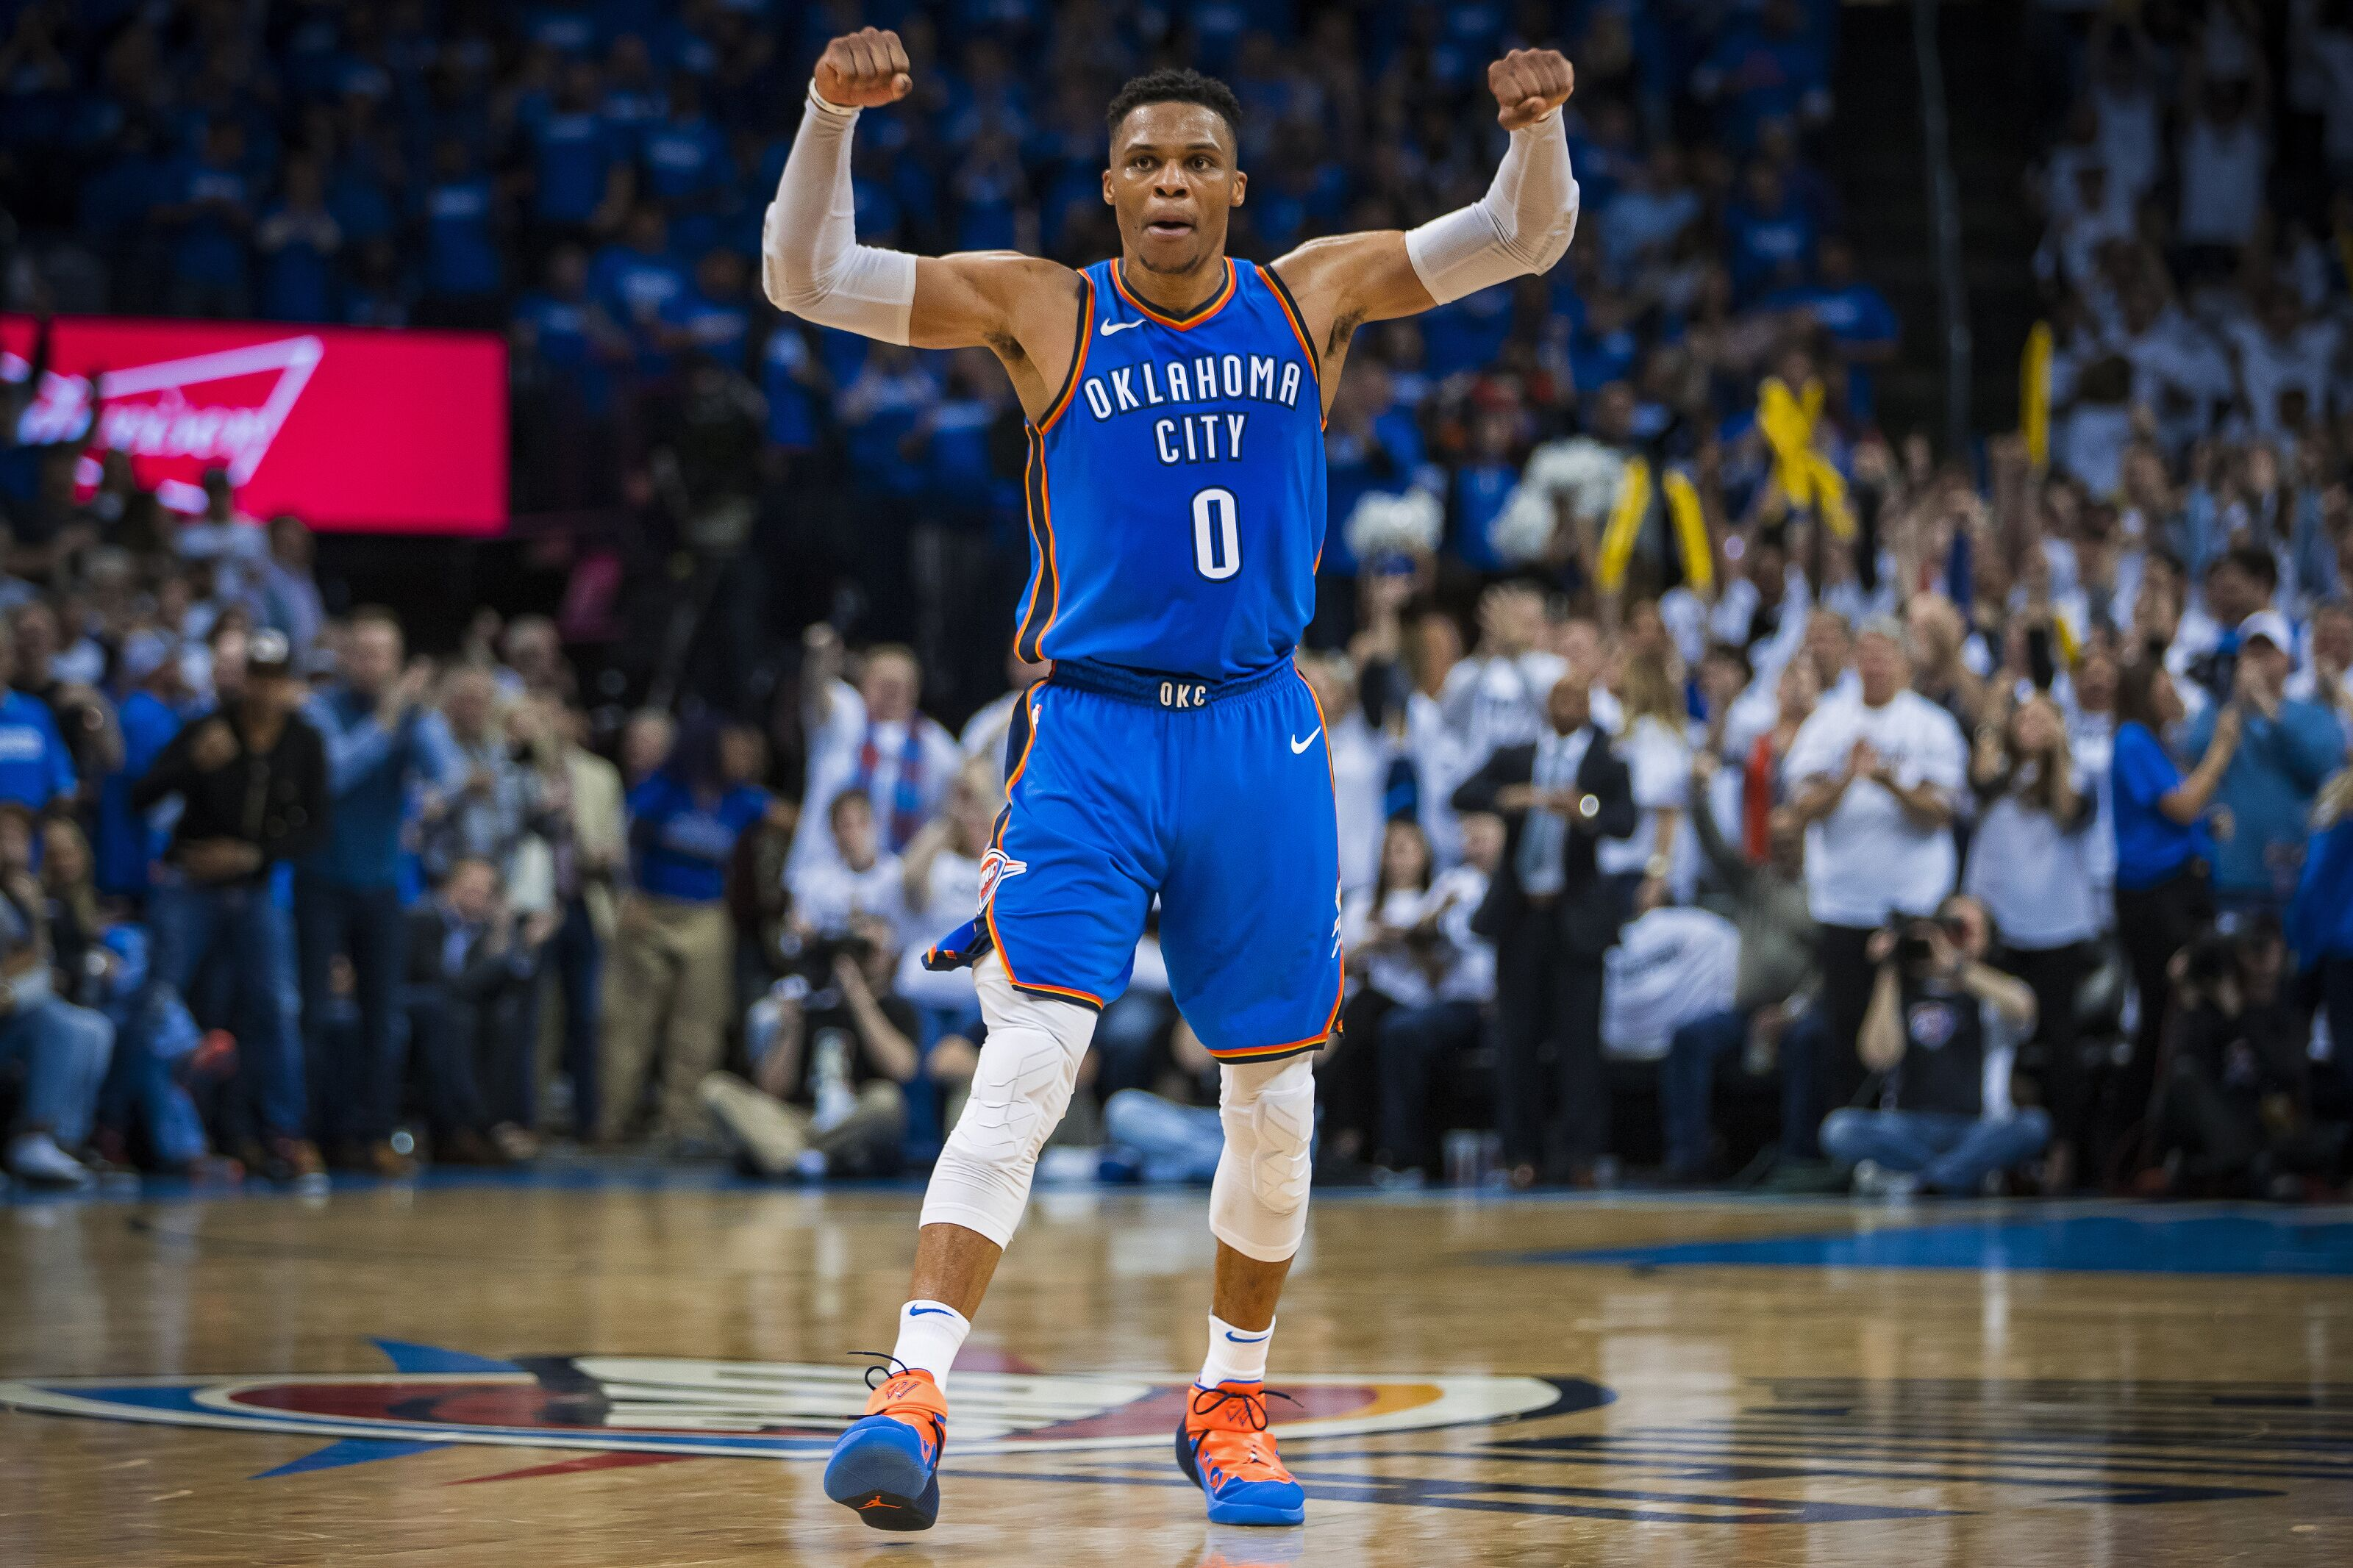 f70fdb39fad7fa Utah Jazz  Russell Westbrook killed the close-out (and my story)